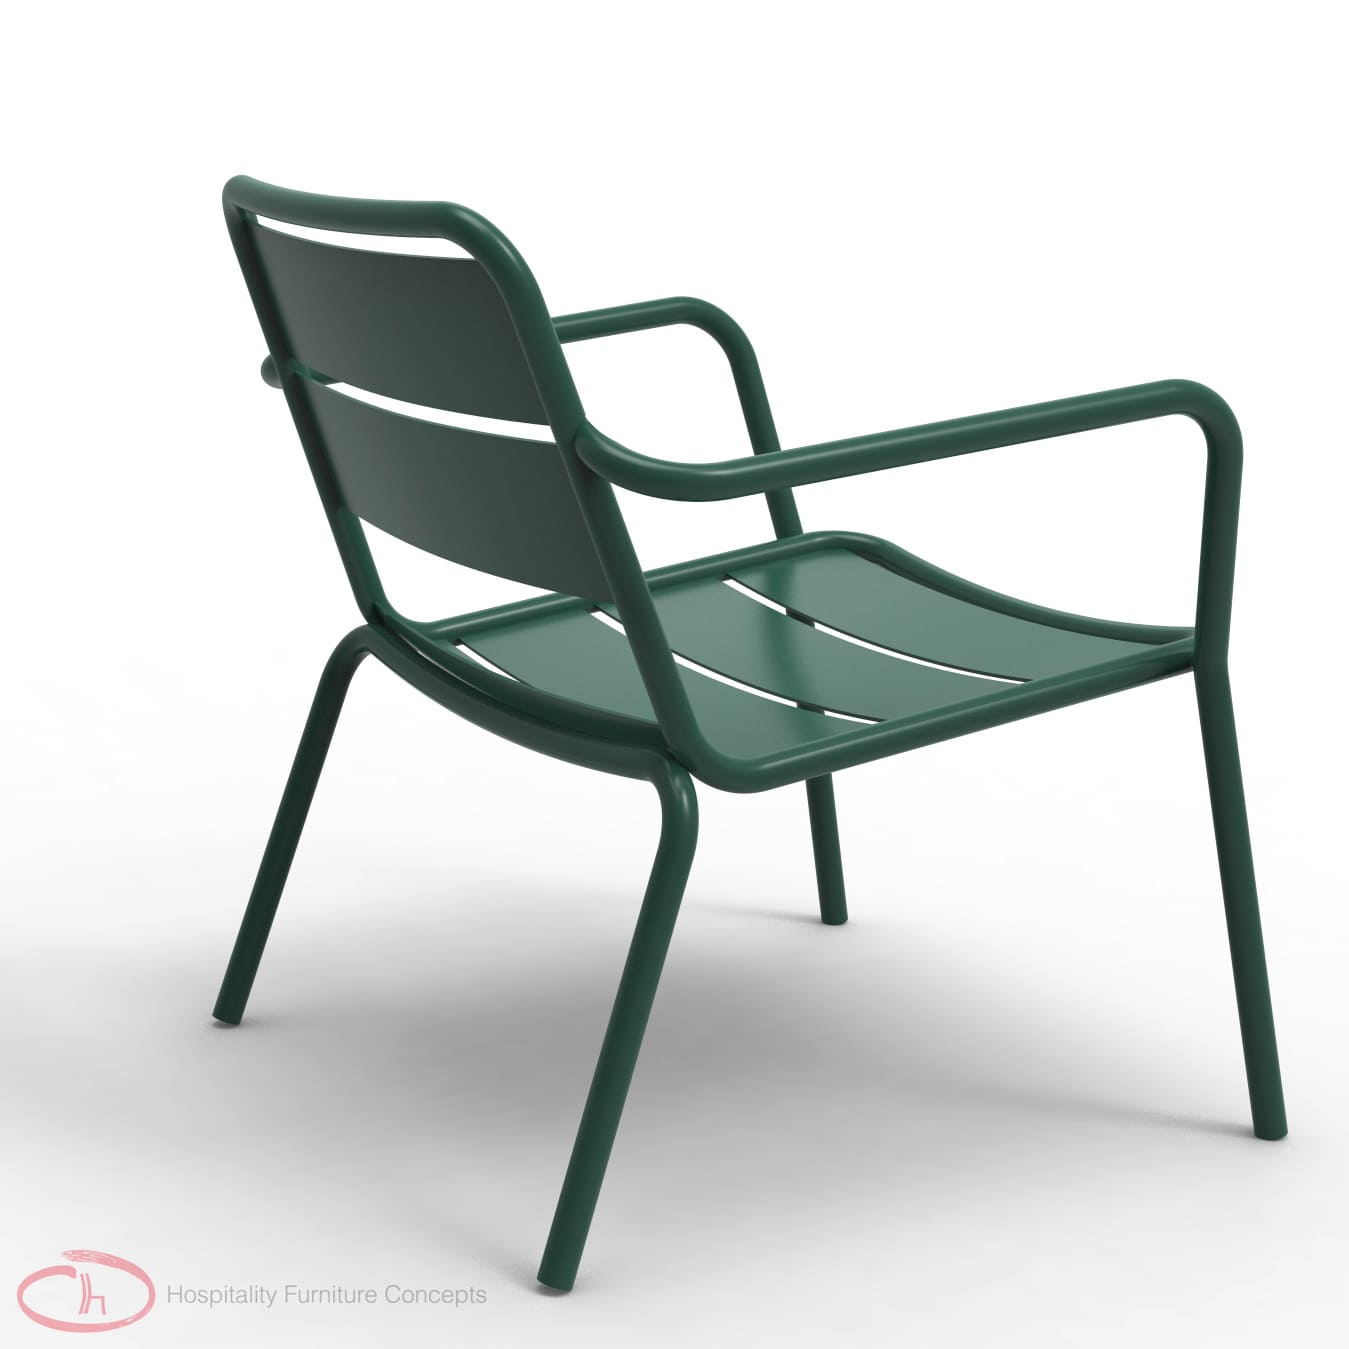 Hospitality Furniture Concepts